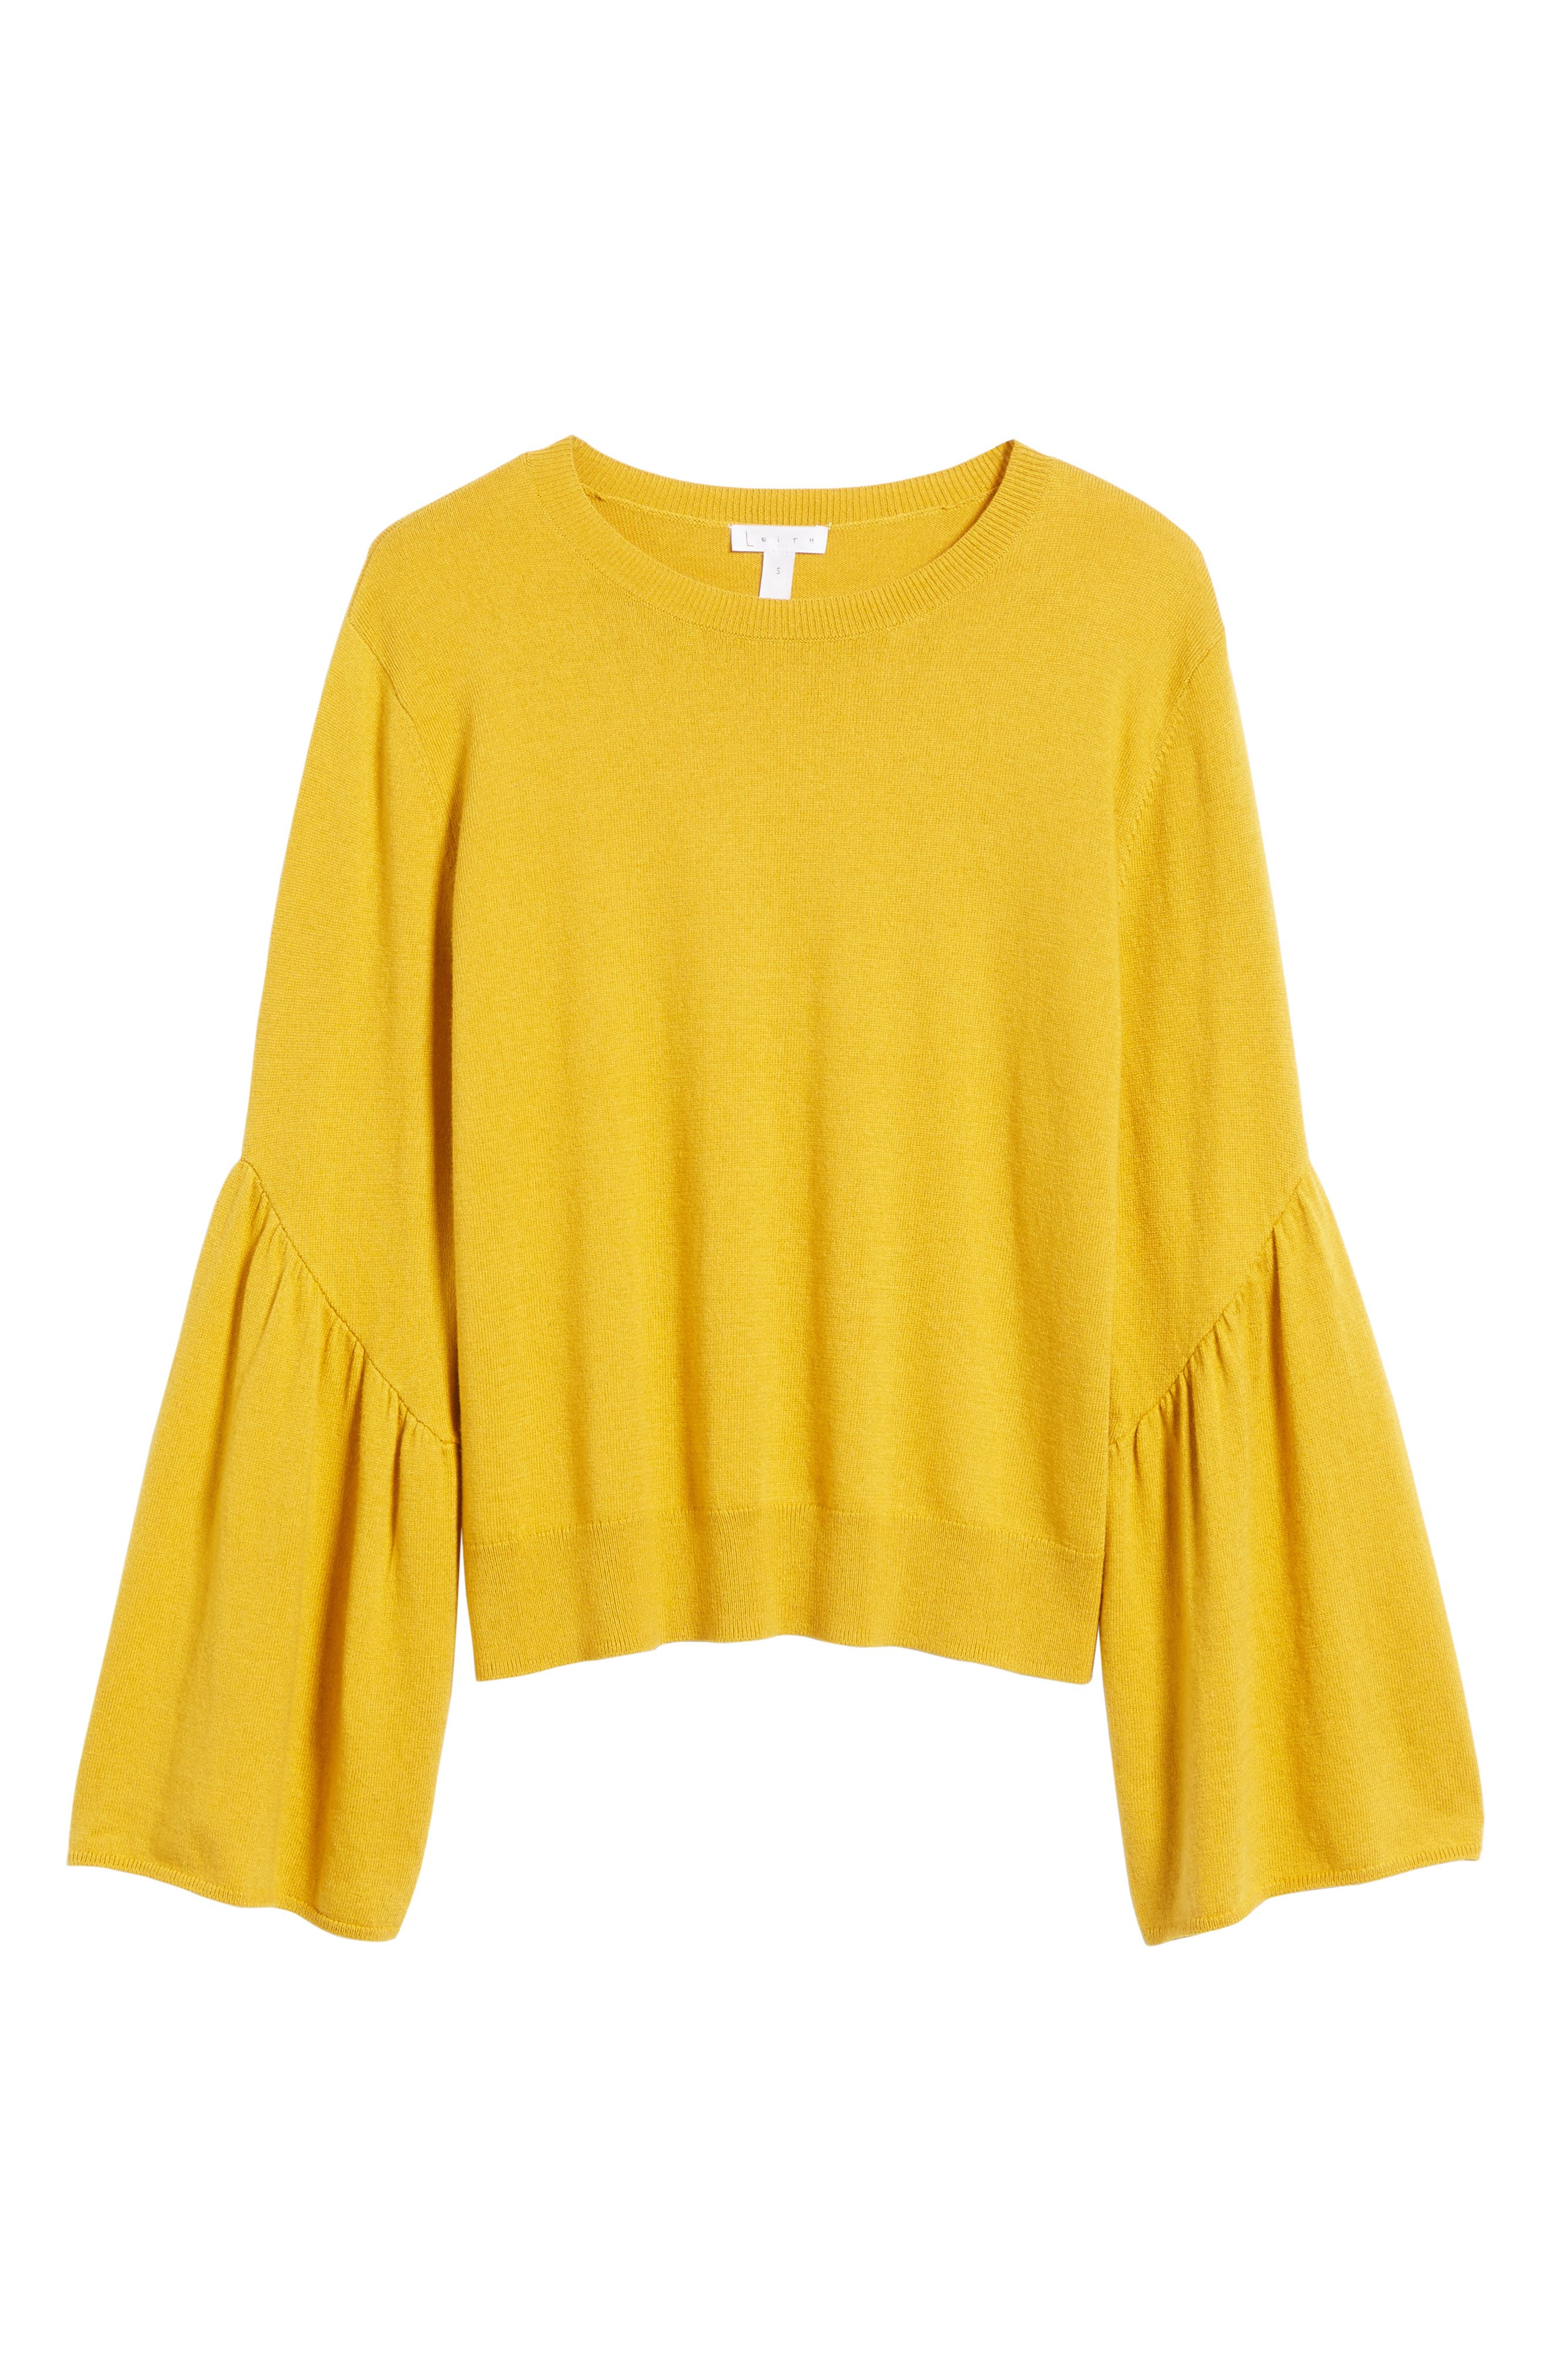 LEITH,                             Bell Sleeve Sweater,                             Alternate thumbnail 6, color,                             700